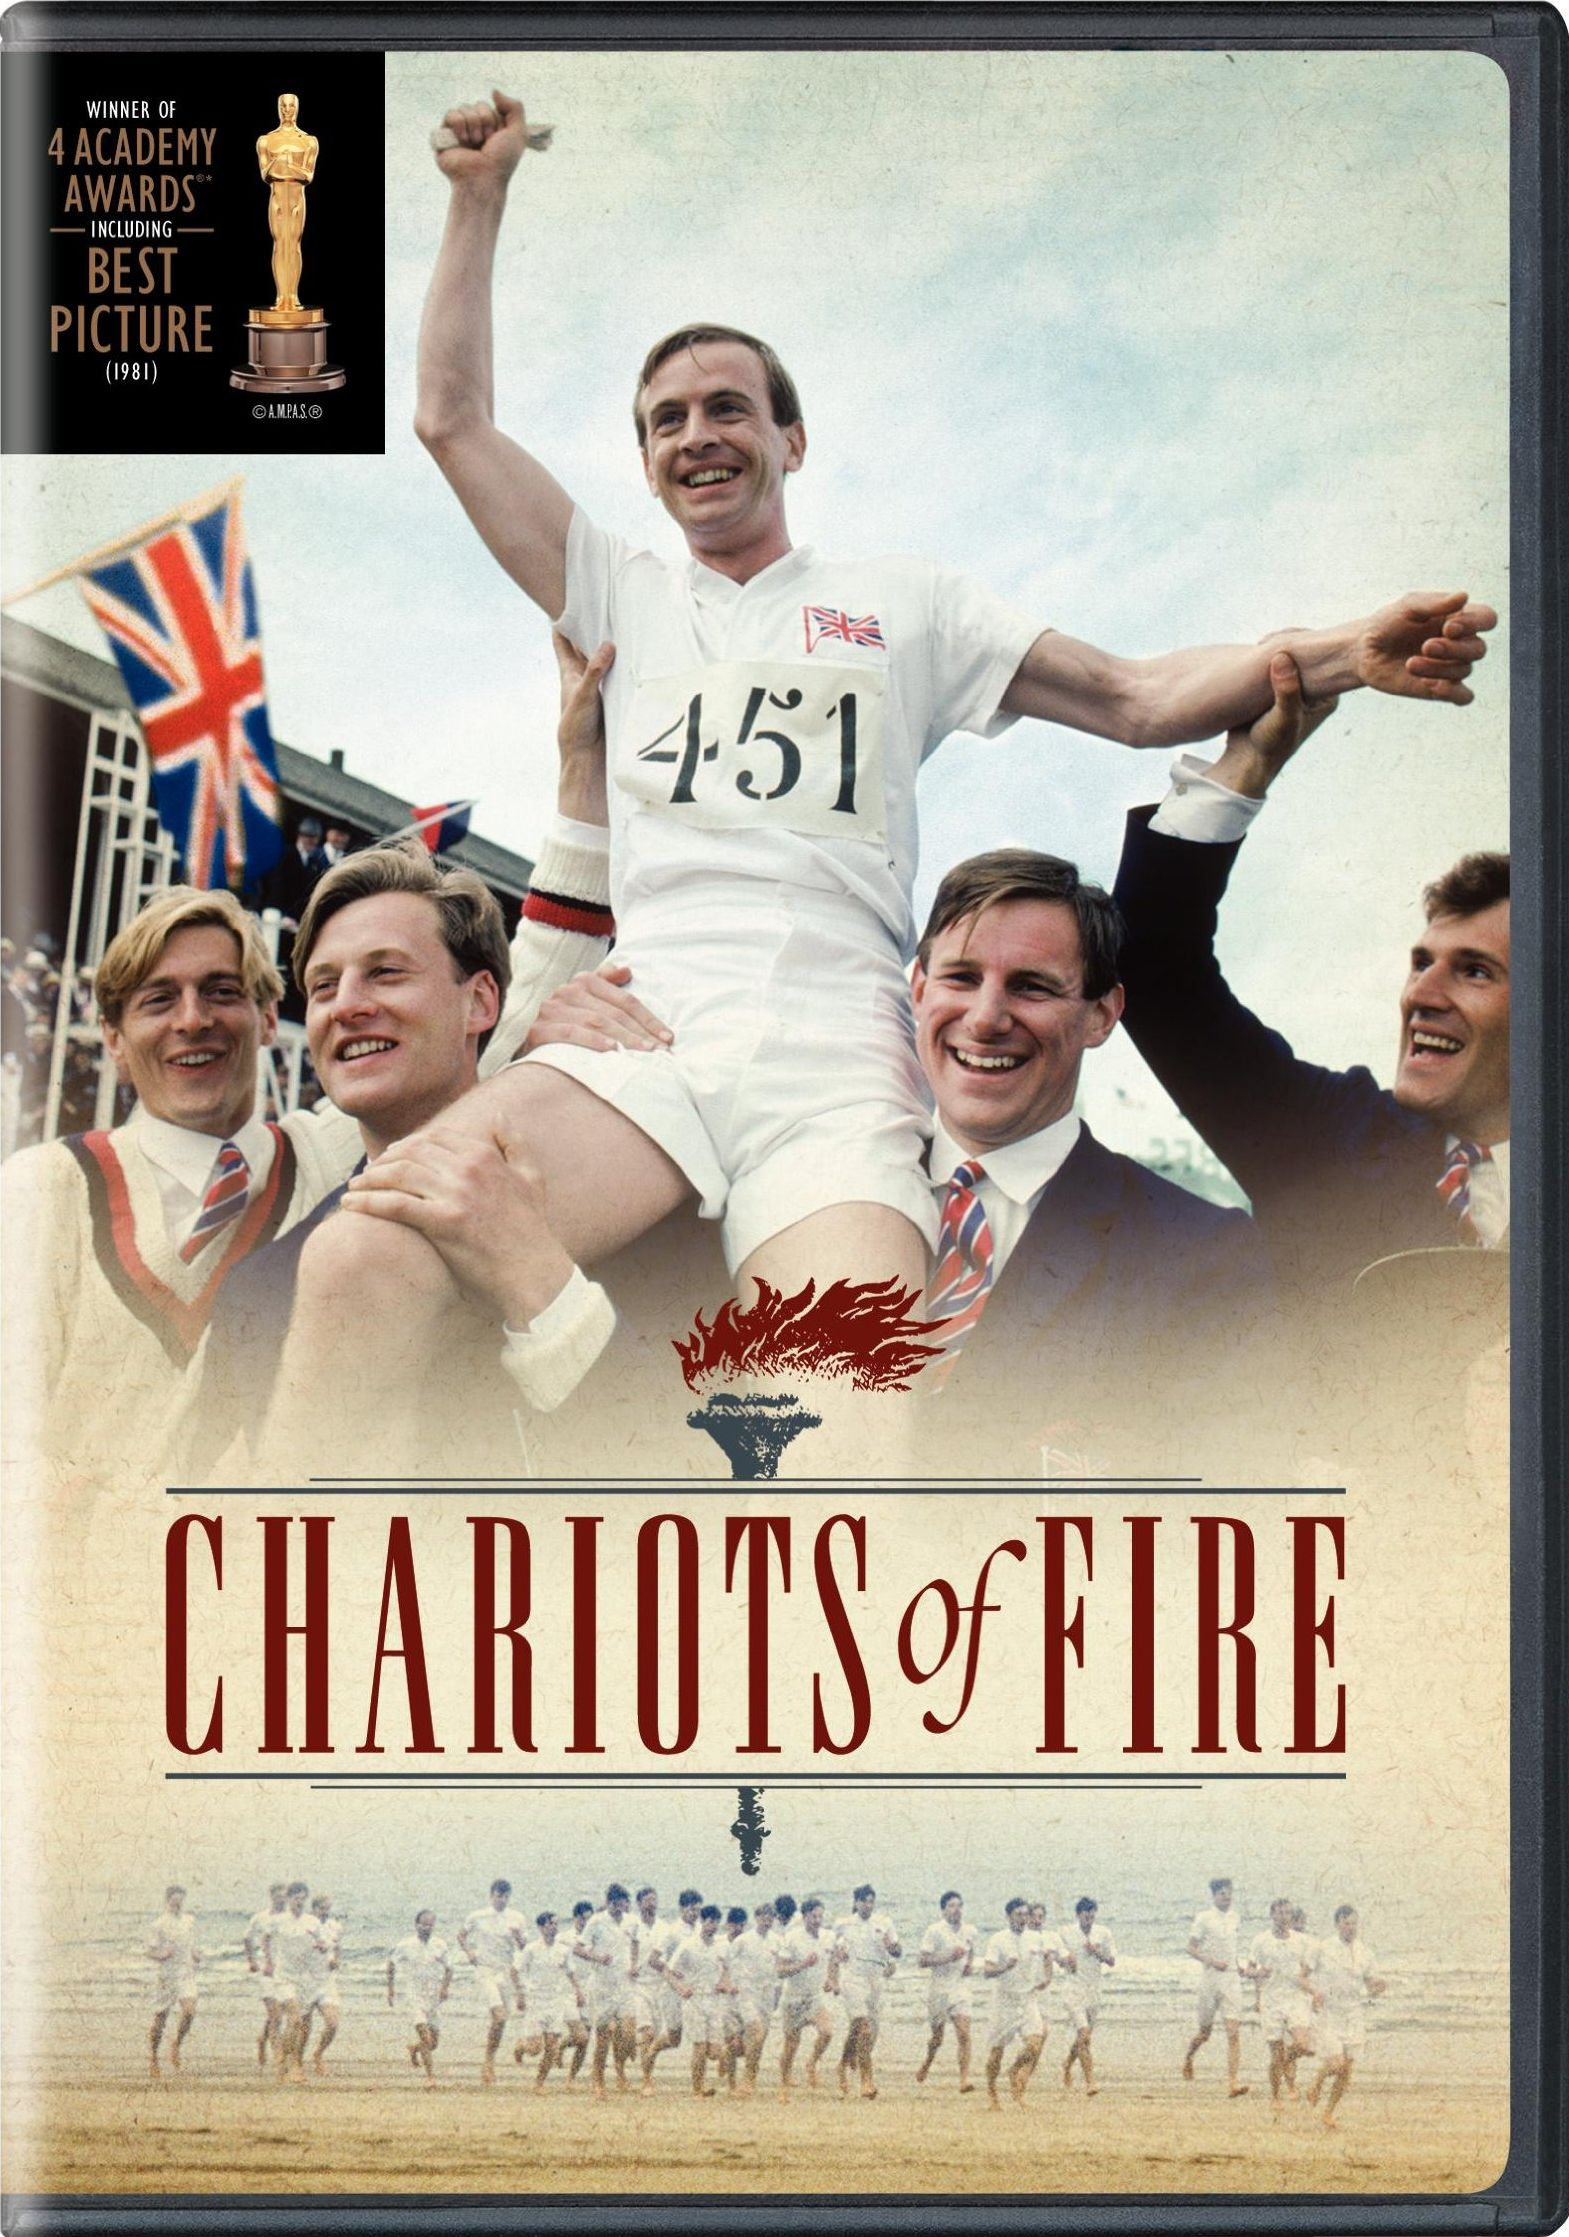 chariots-of-fire-dvd-cover-60